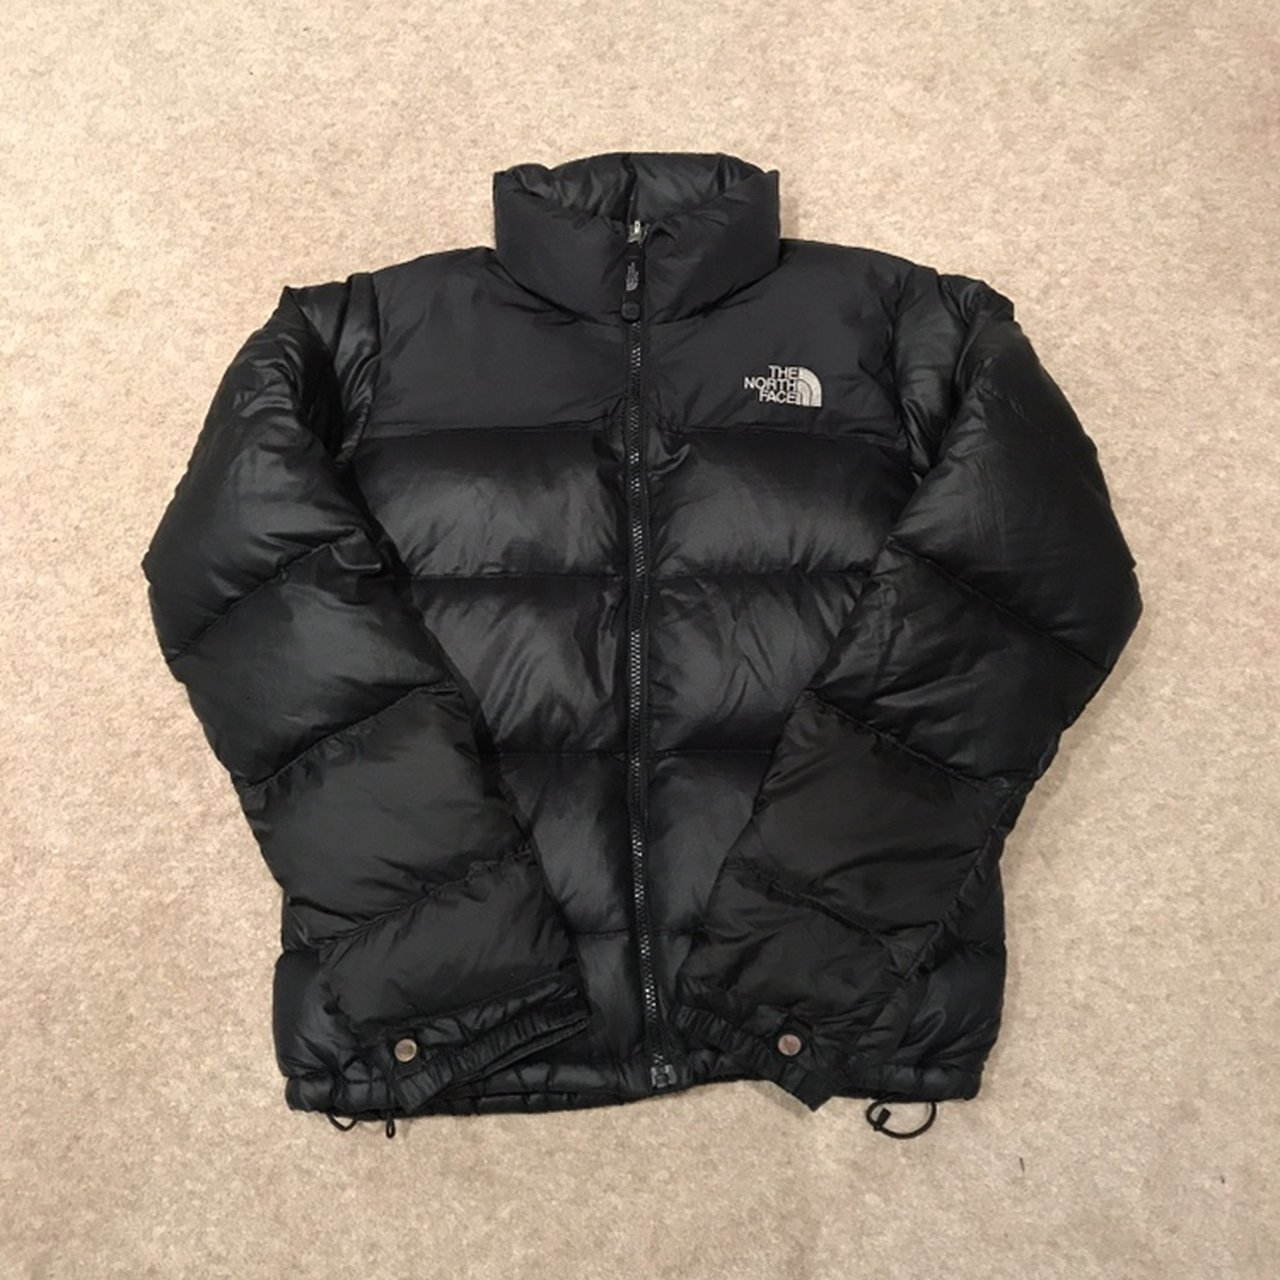 Women s North Face Nuptse Down Size Small Puffer Jacket Very - Depop 47835e6f9